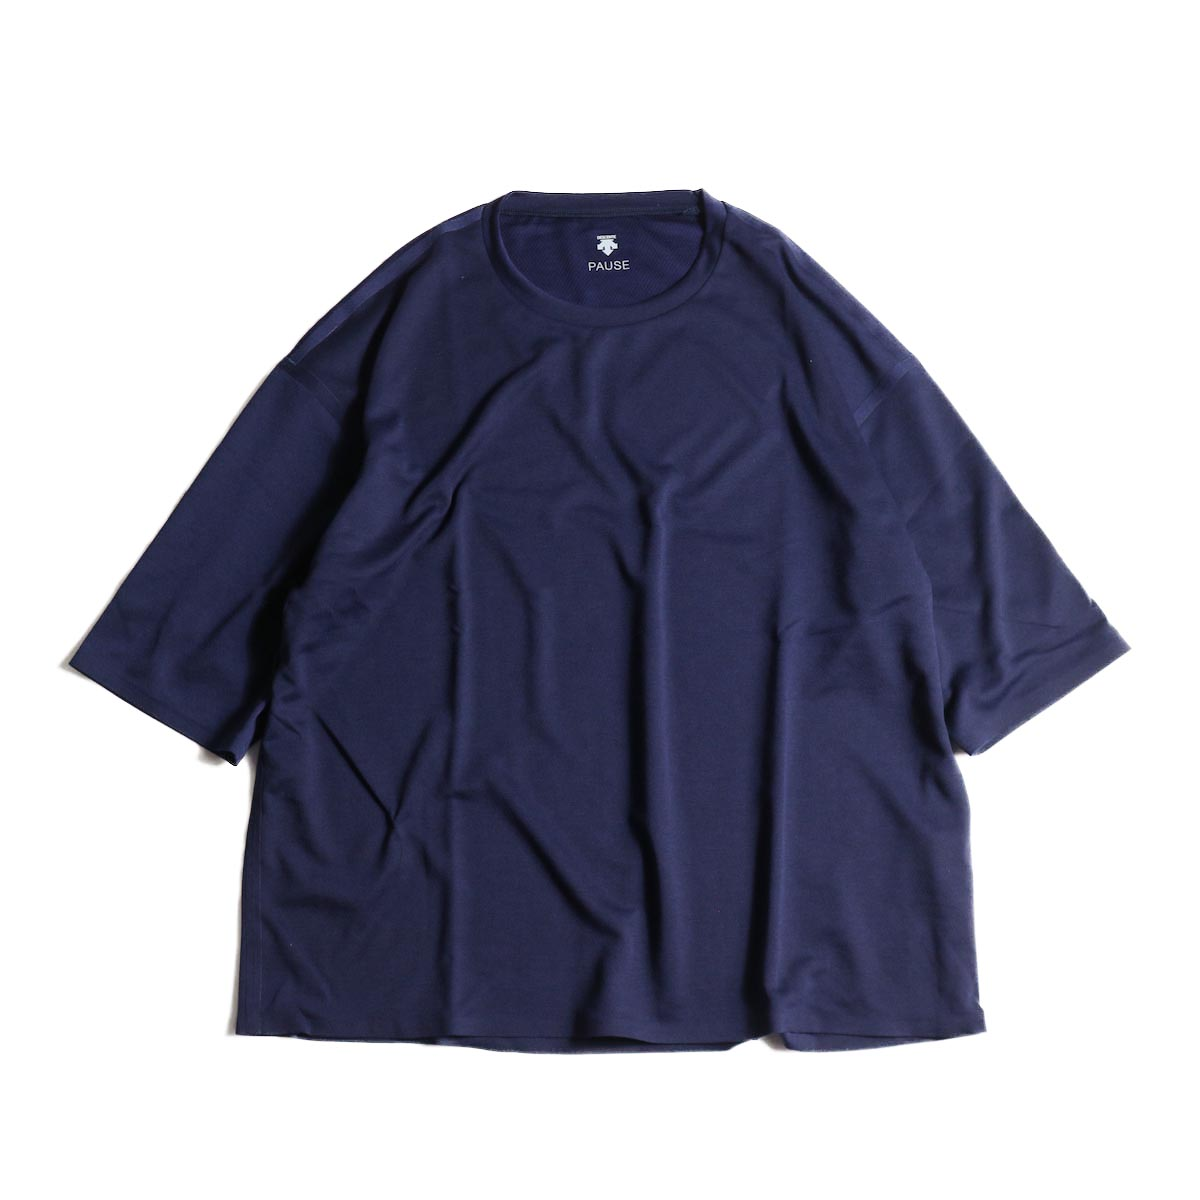 (Ladie's) DESCENTE PAUSE / ZEROSEAM BIG T-SHIRT (Navy)